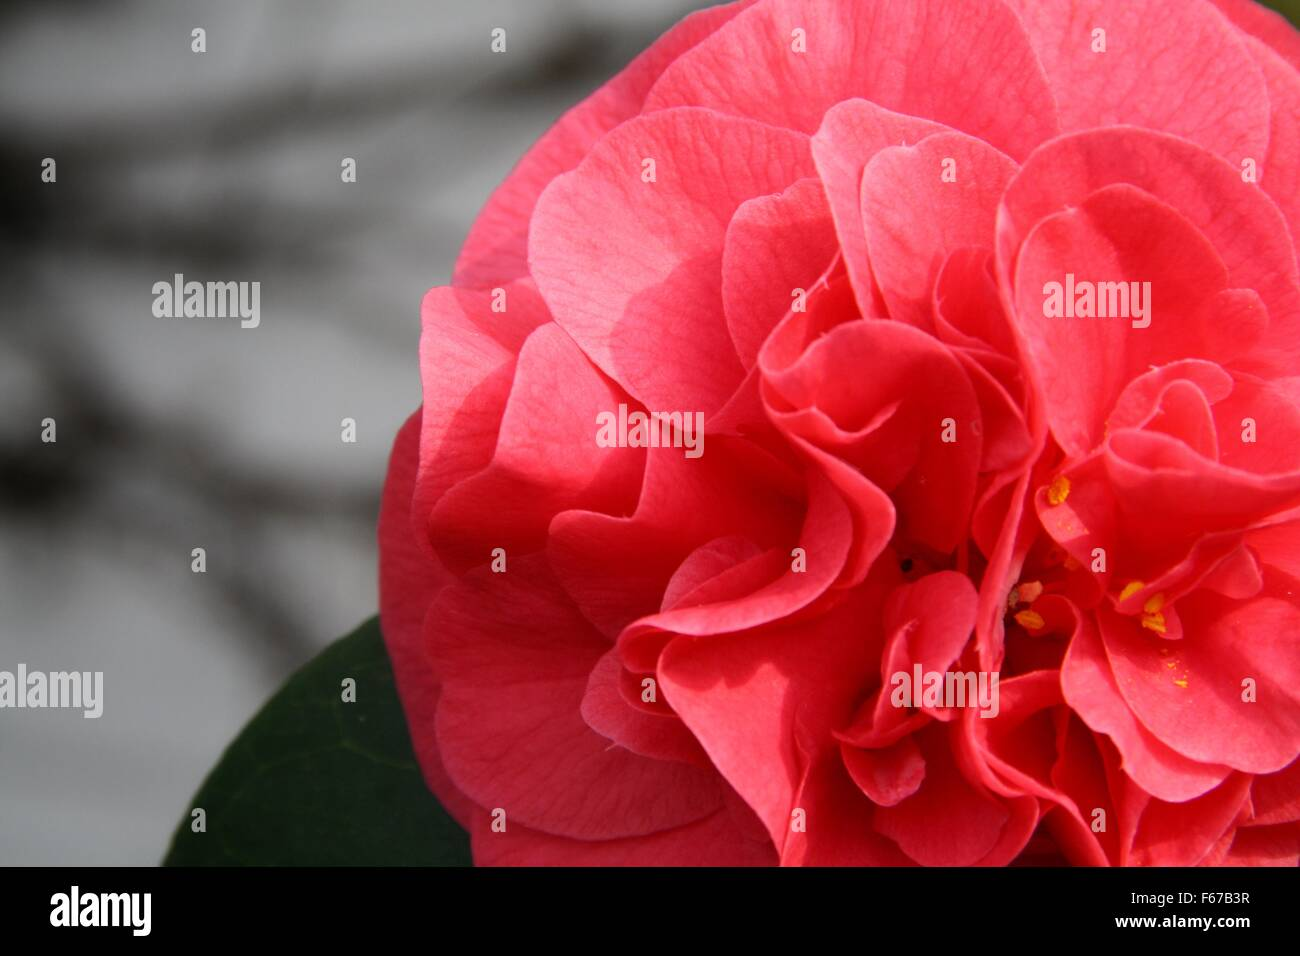 Red blooming flower - Stock Image